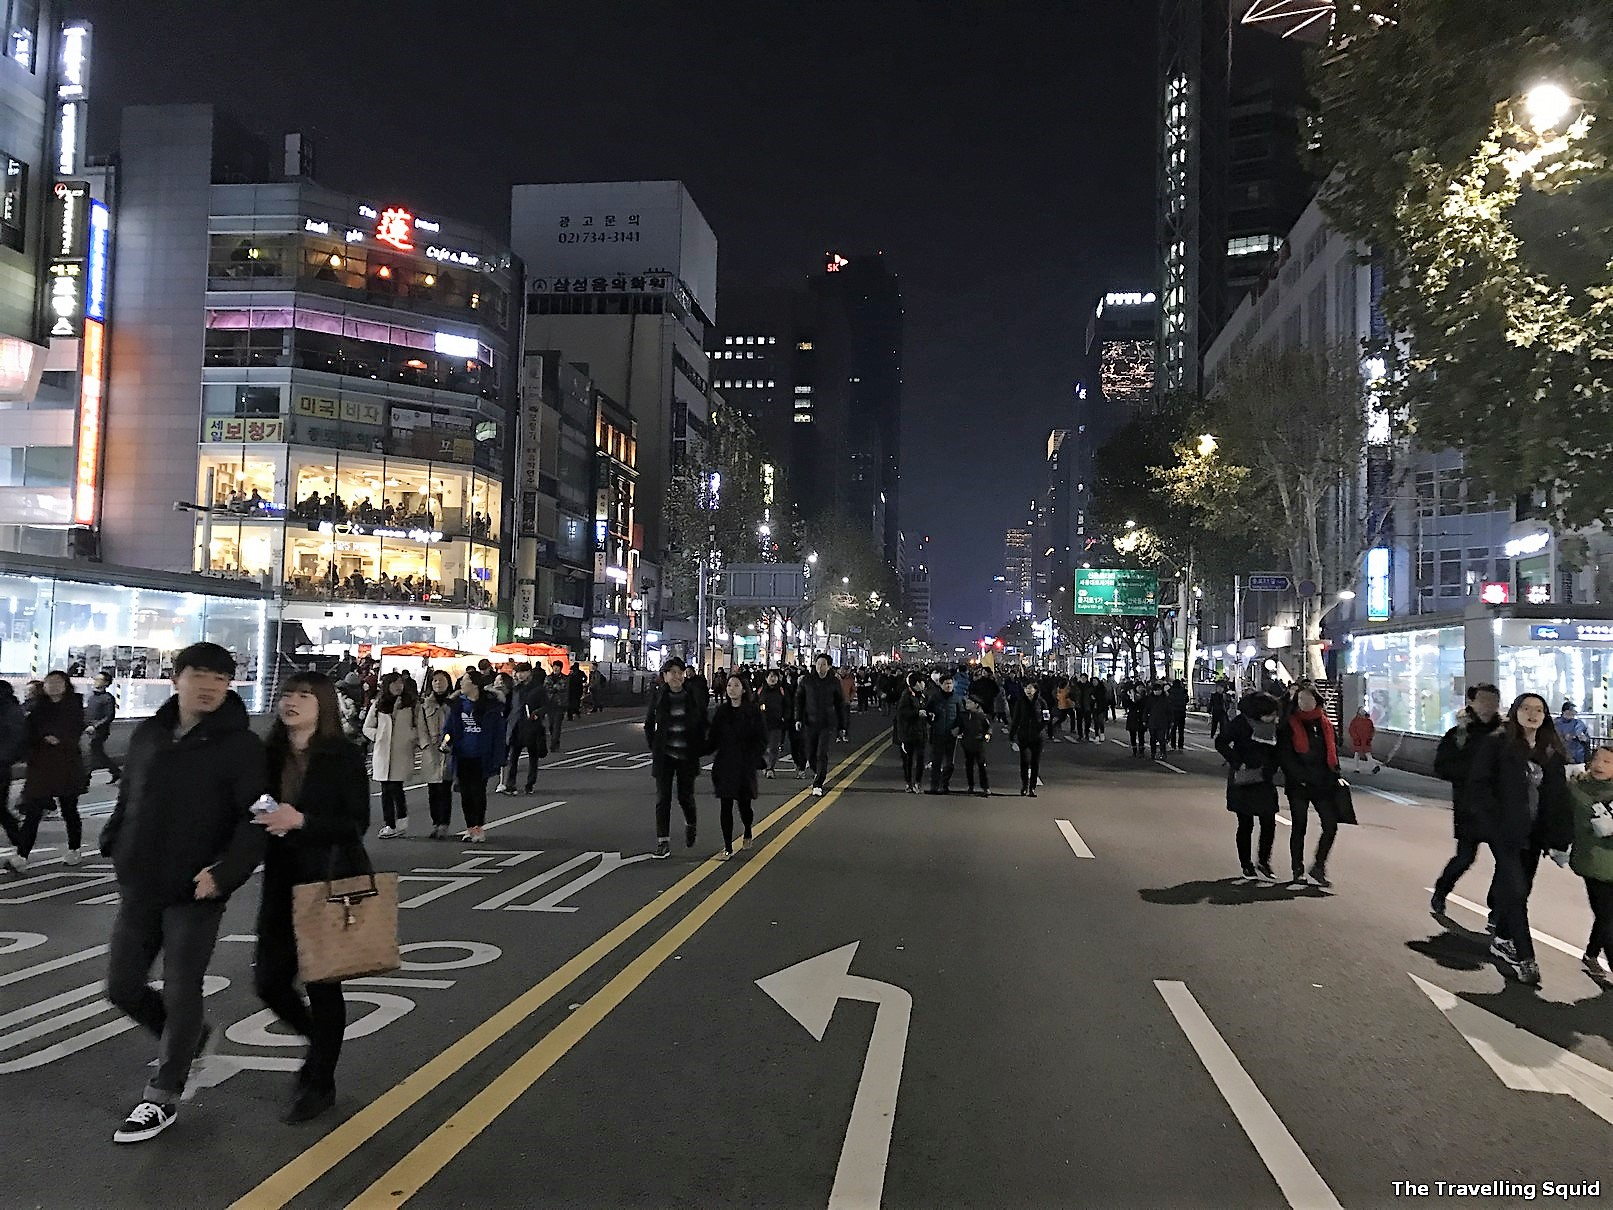 visit Seoul while protests are ongoing